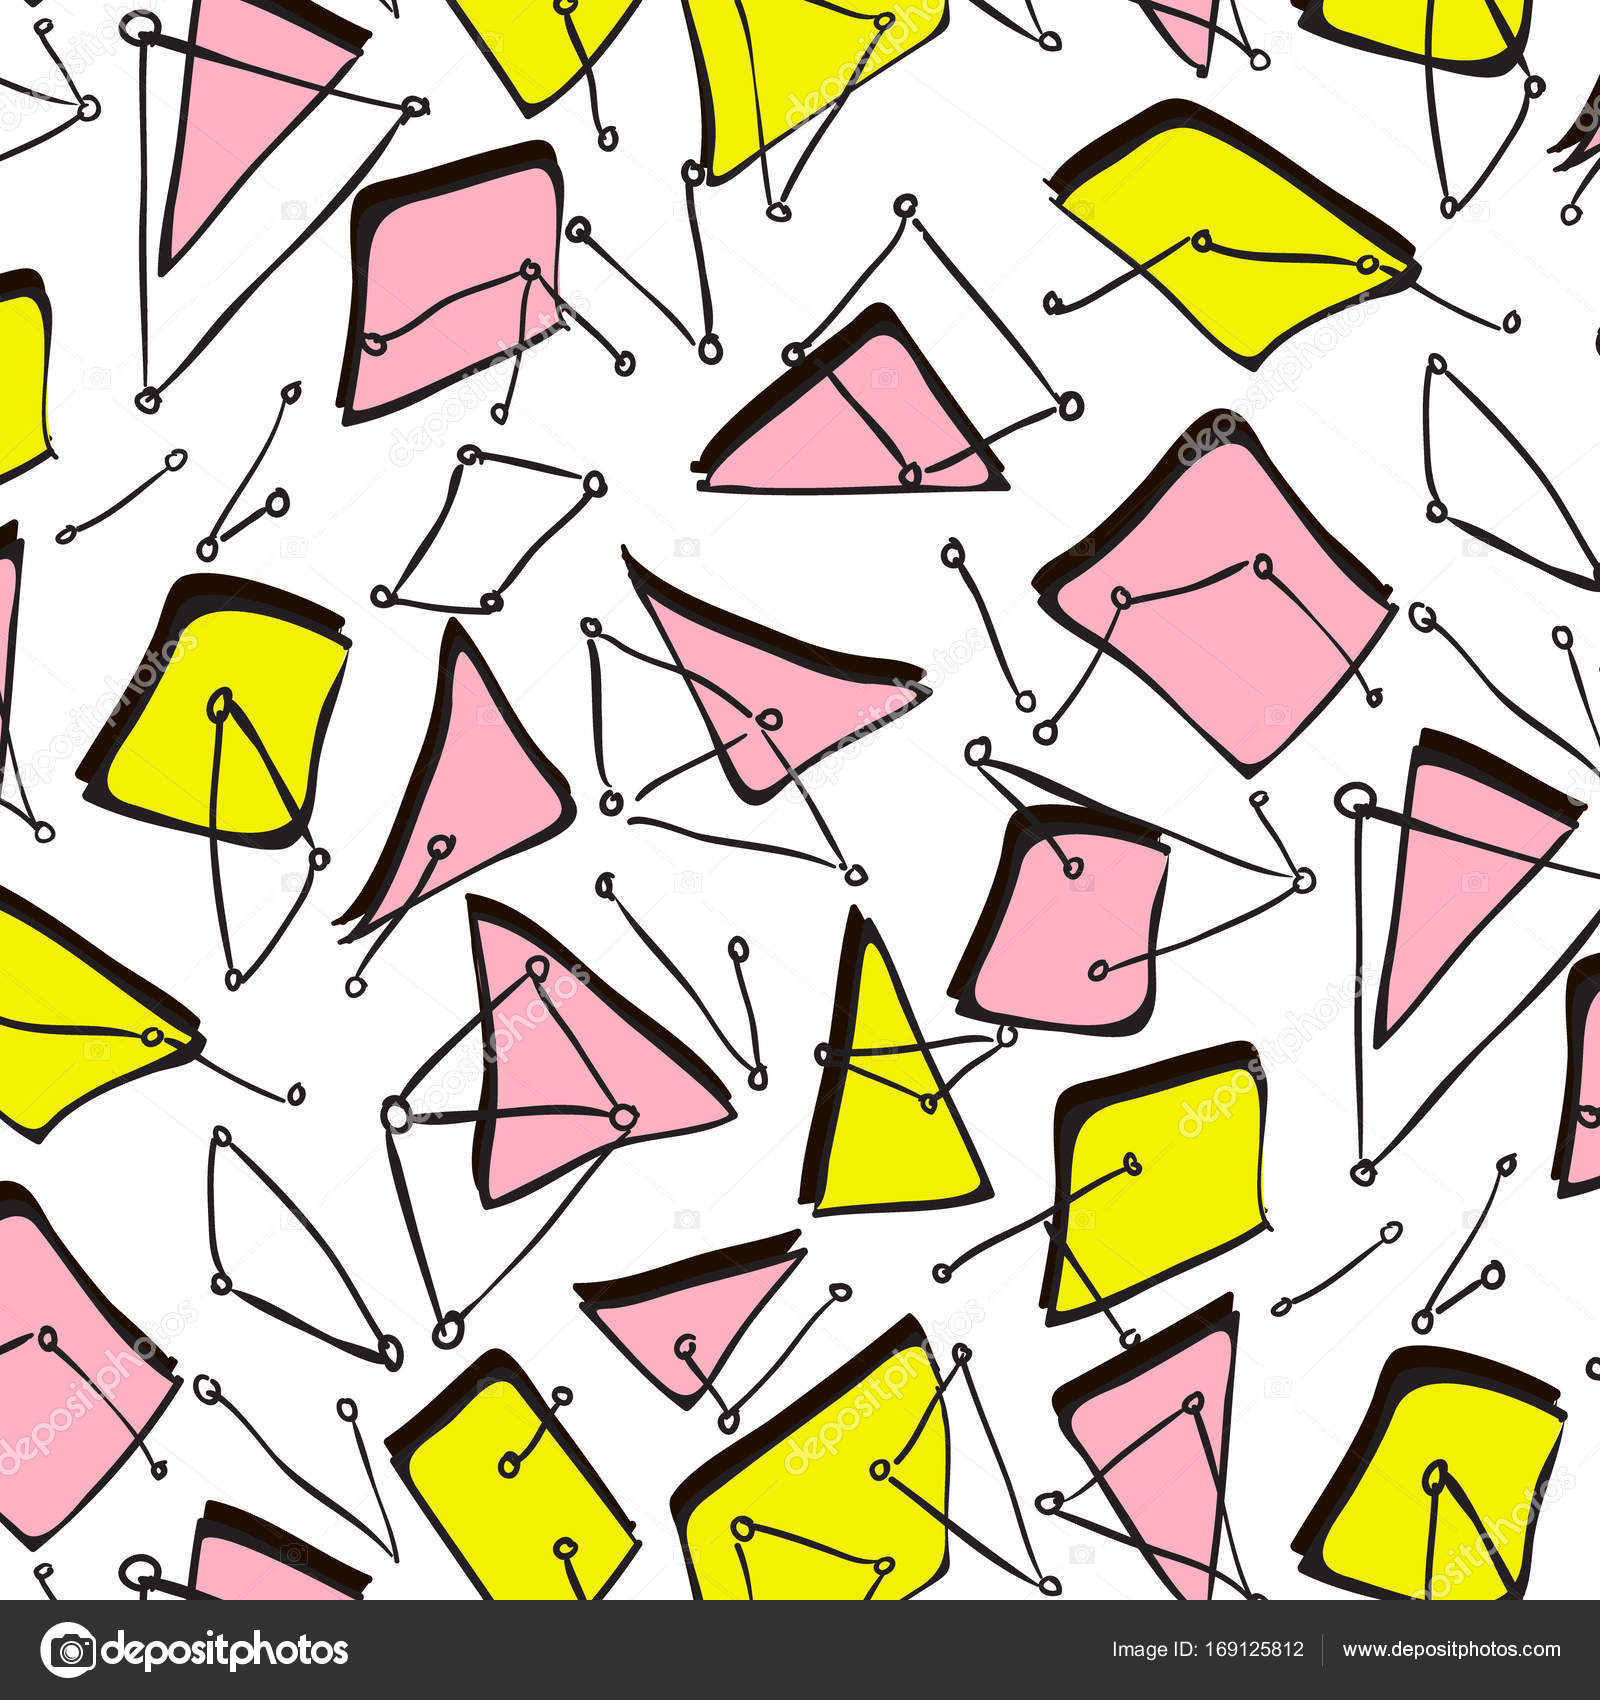 Geometric pattern memphis style  Vector illustration with